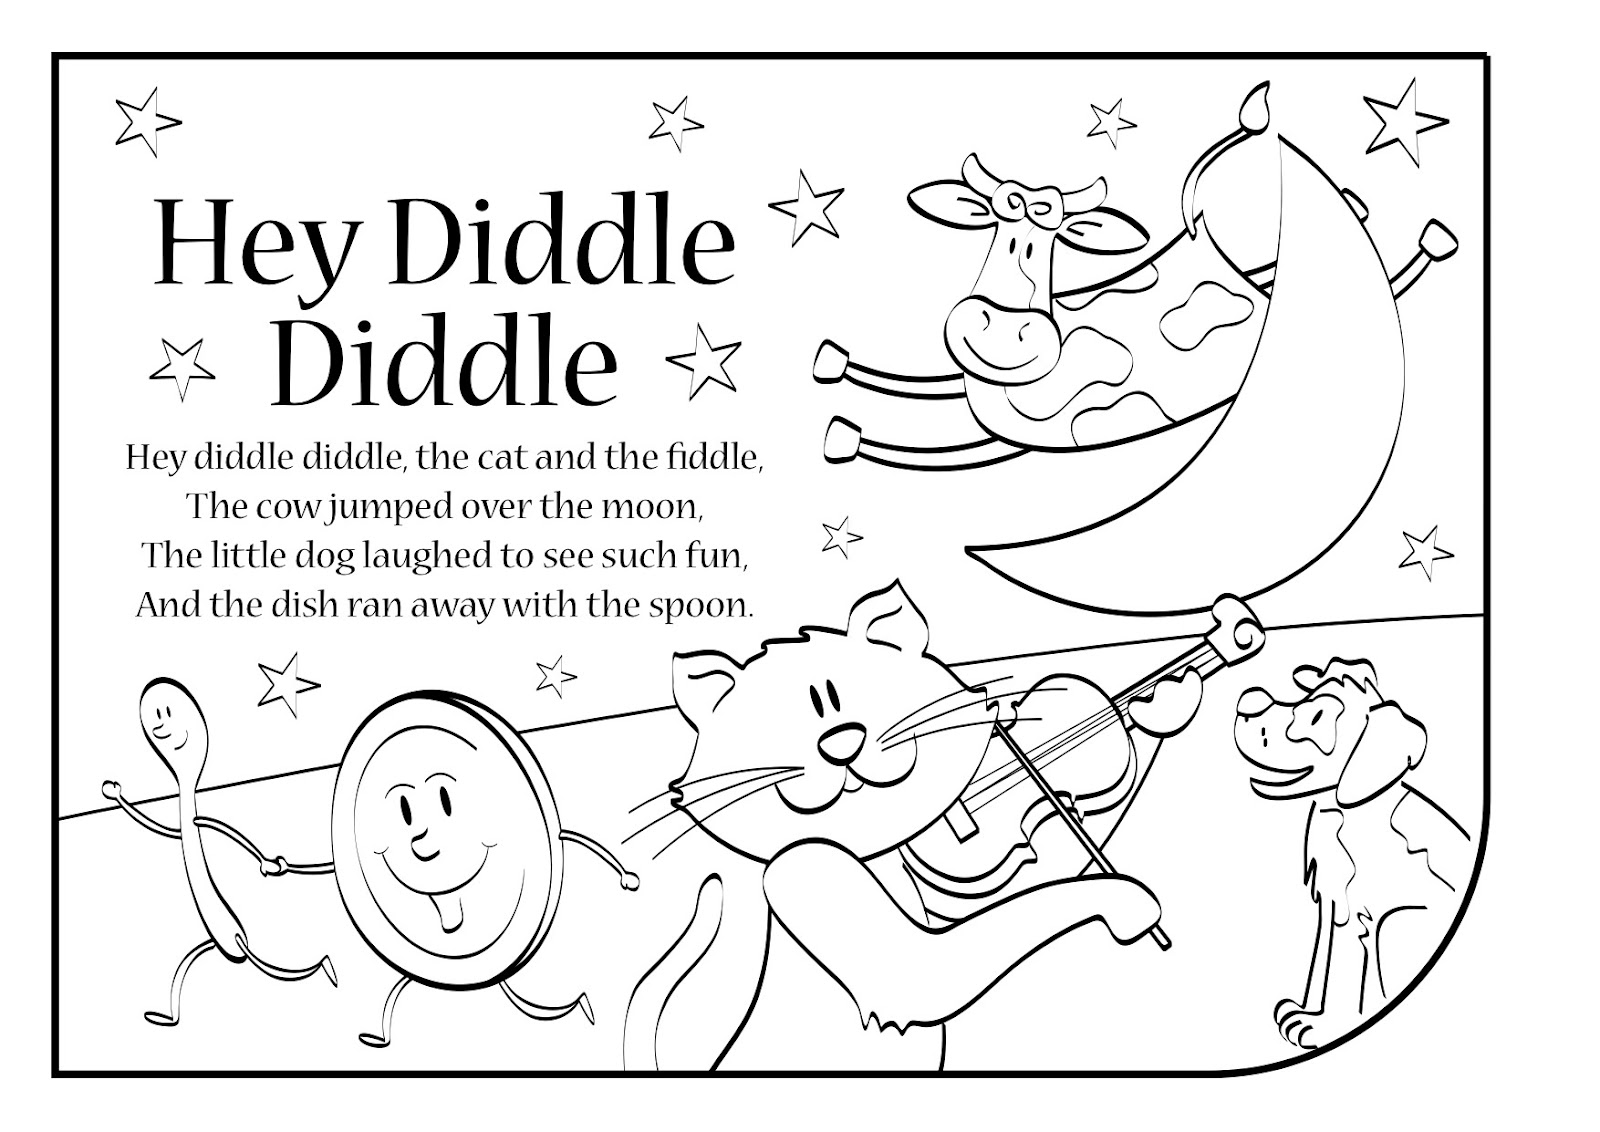 Nursery Rhyme Coloring Pages Pdf : Free coloring pages of hey diddle fiddle